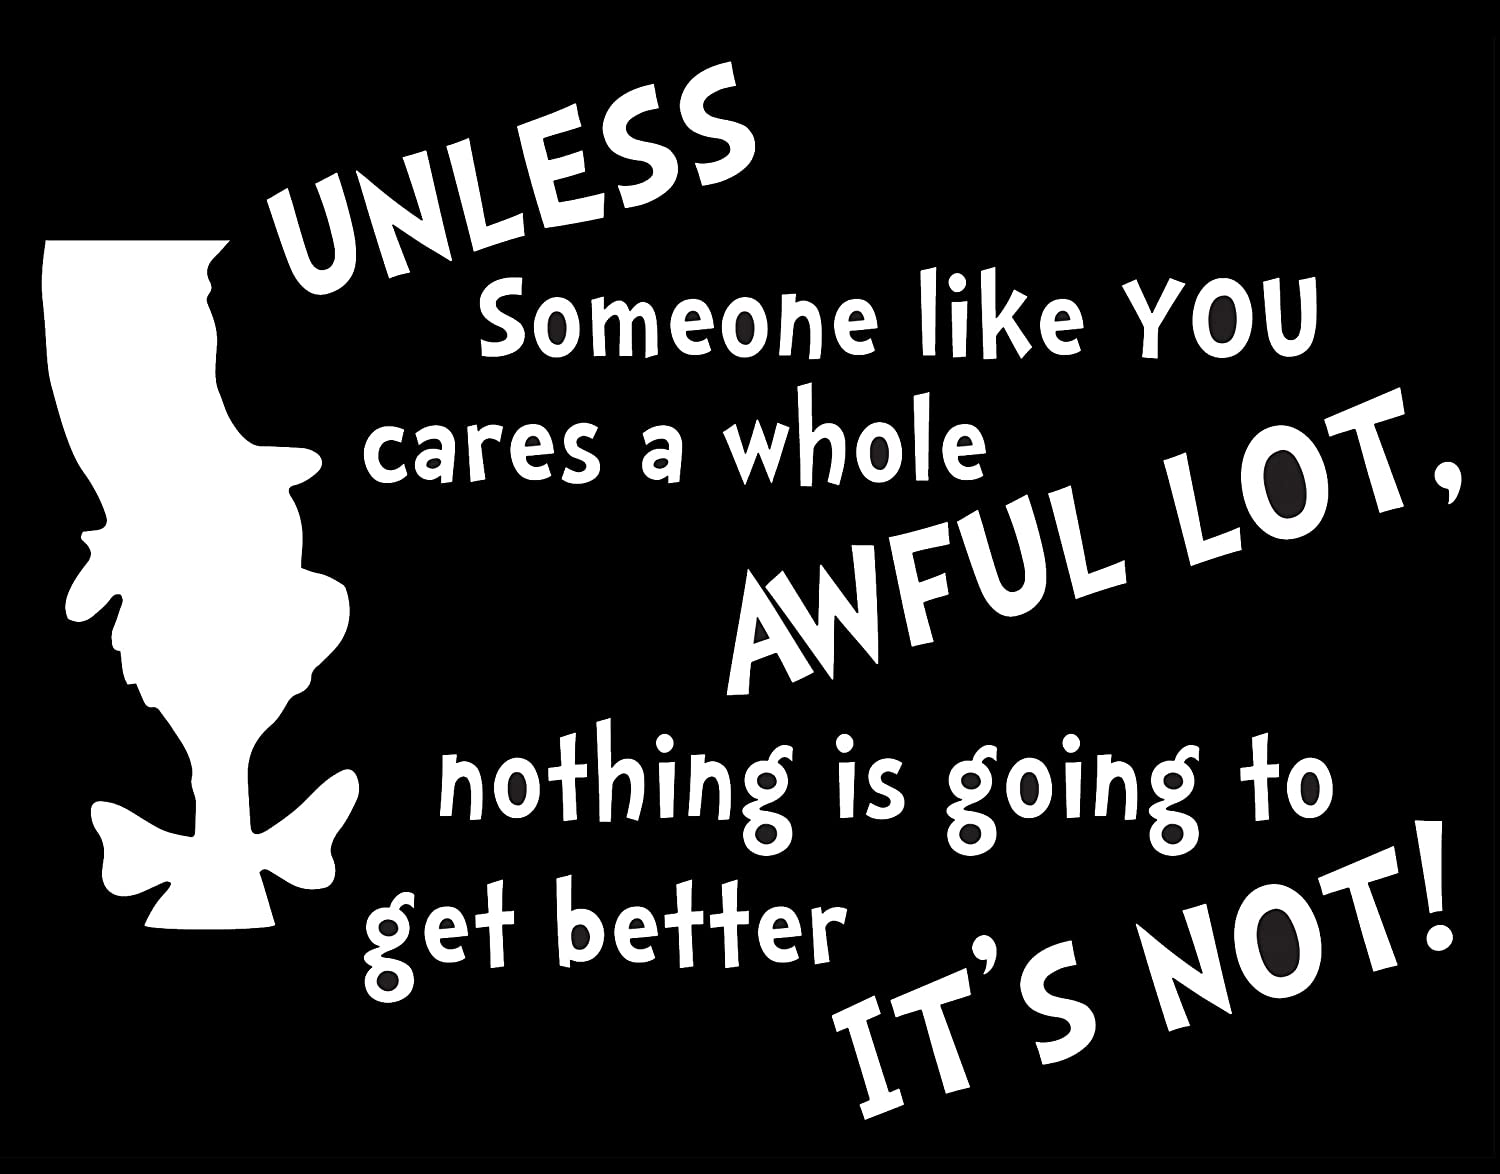 Unless Someone Like You Cares Dr Suess Decal Vinyl Sticker|Cars Trucks Vans Walls Laptop| White |7.5 x 5.6 in|DUC254